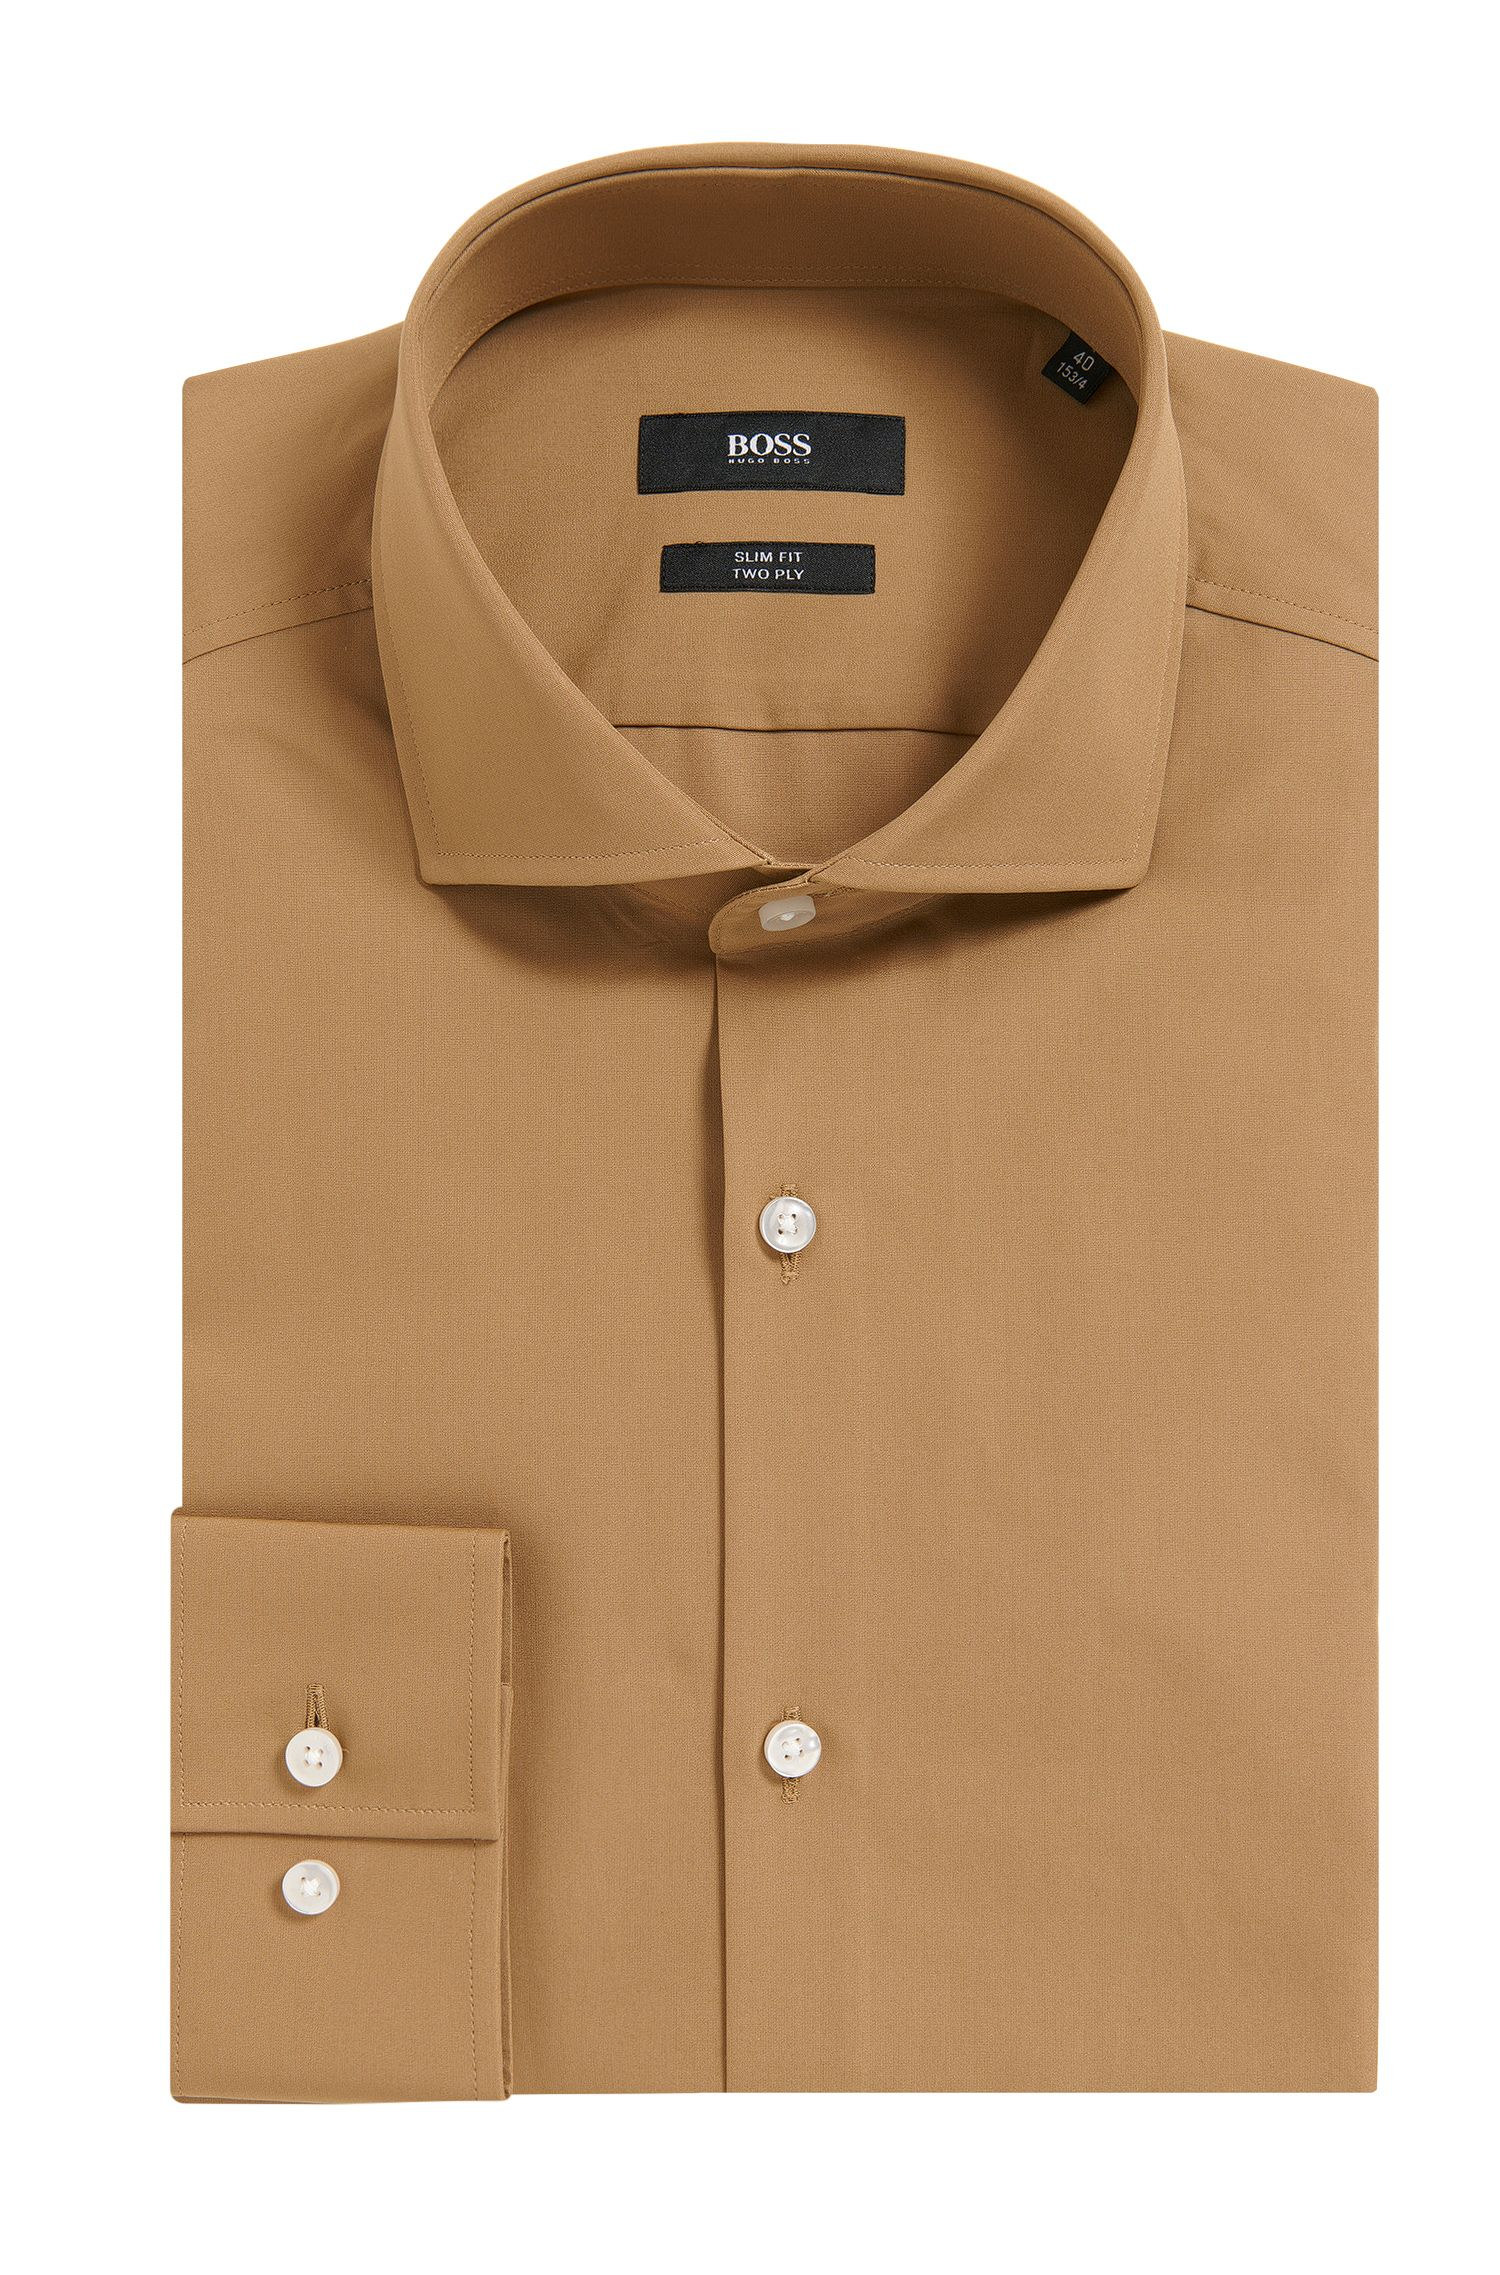 2-Ply Cotton Dress Shirt, Slim Fit | Jason